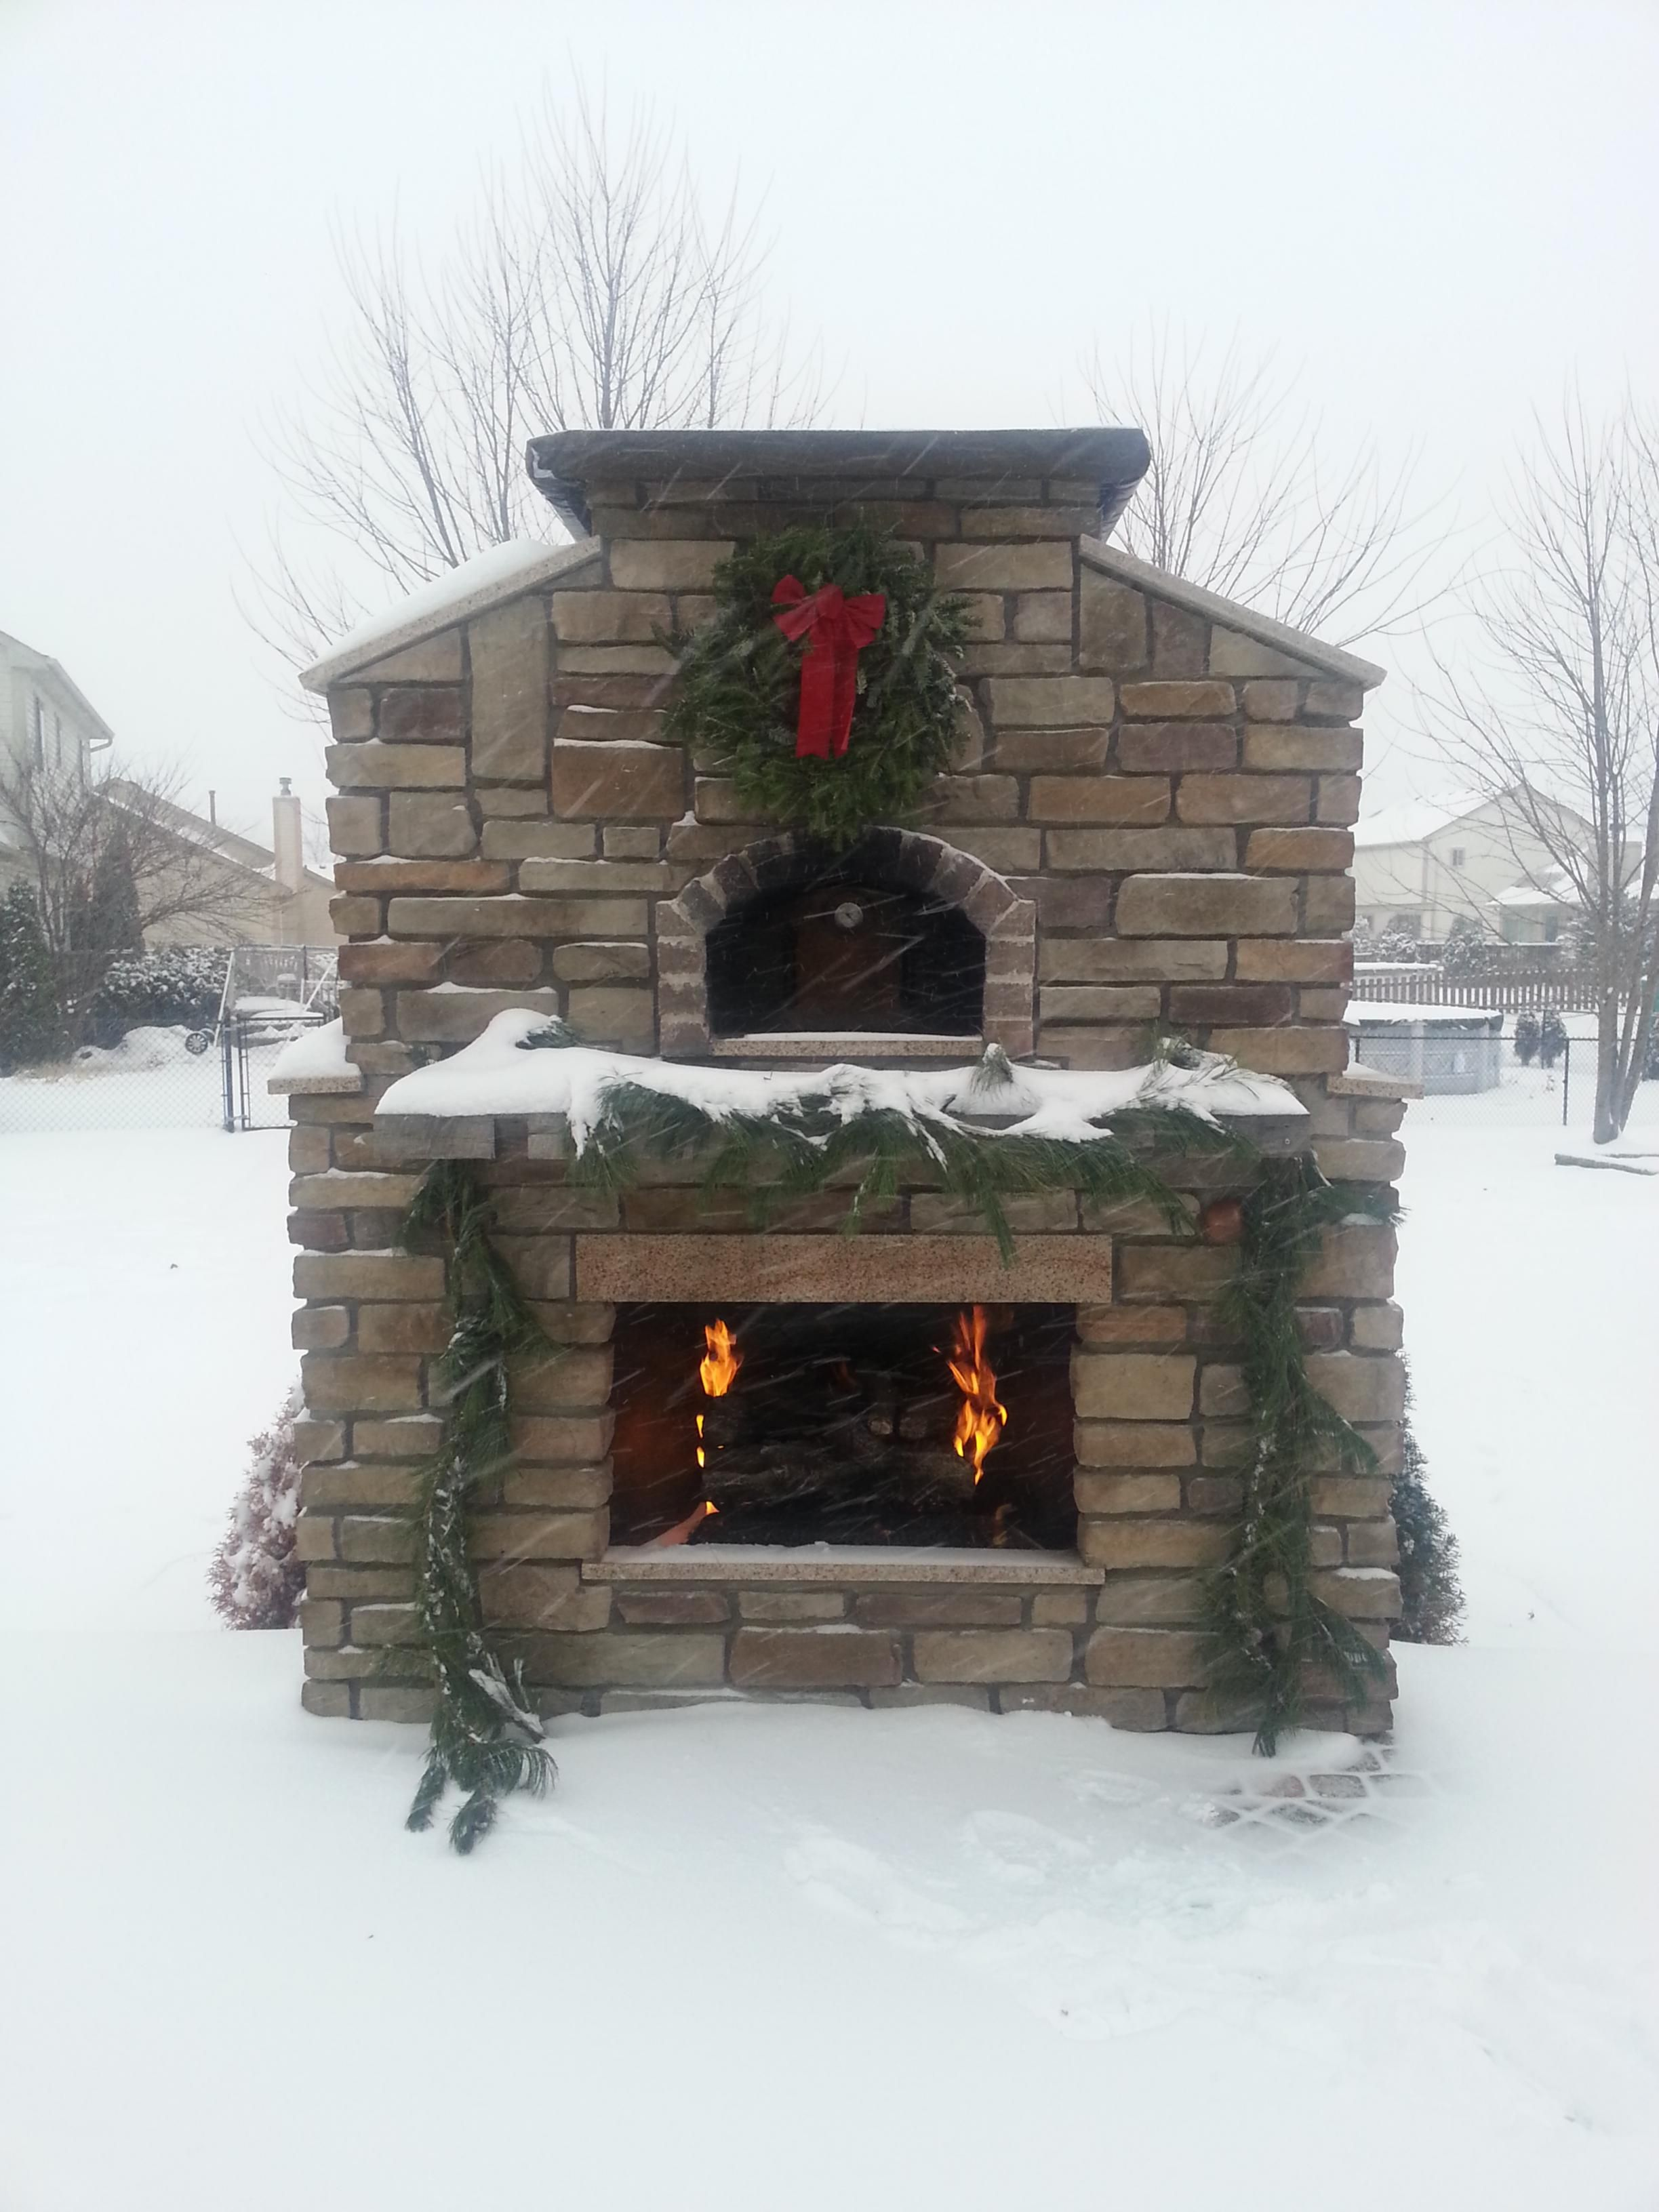 Bake Oven / Fireplace Combination Heat Kit   Search ...